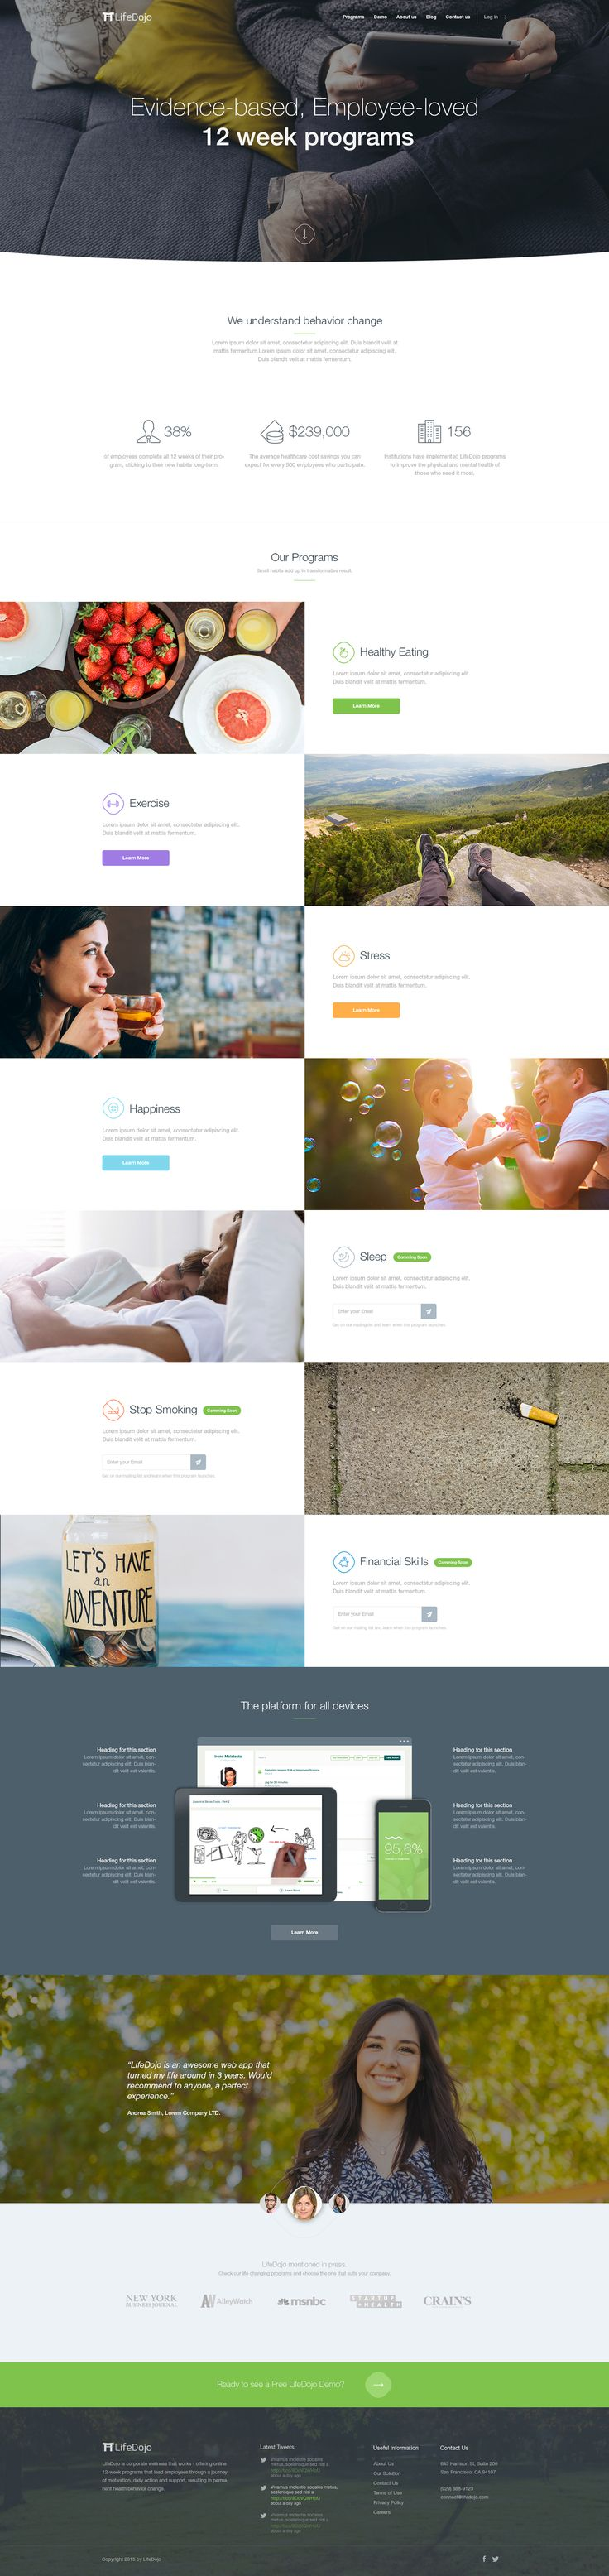 41 best Home Page images on Pinterest | Design web, Design websites ...